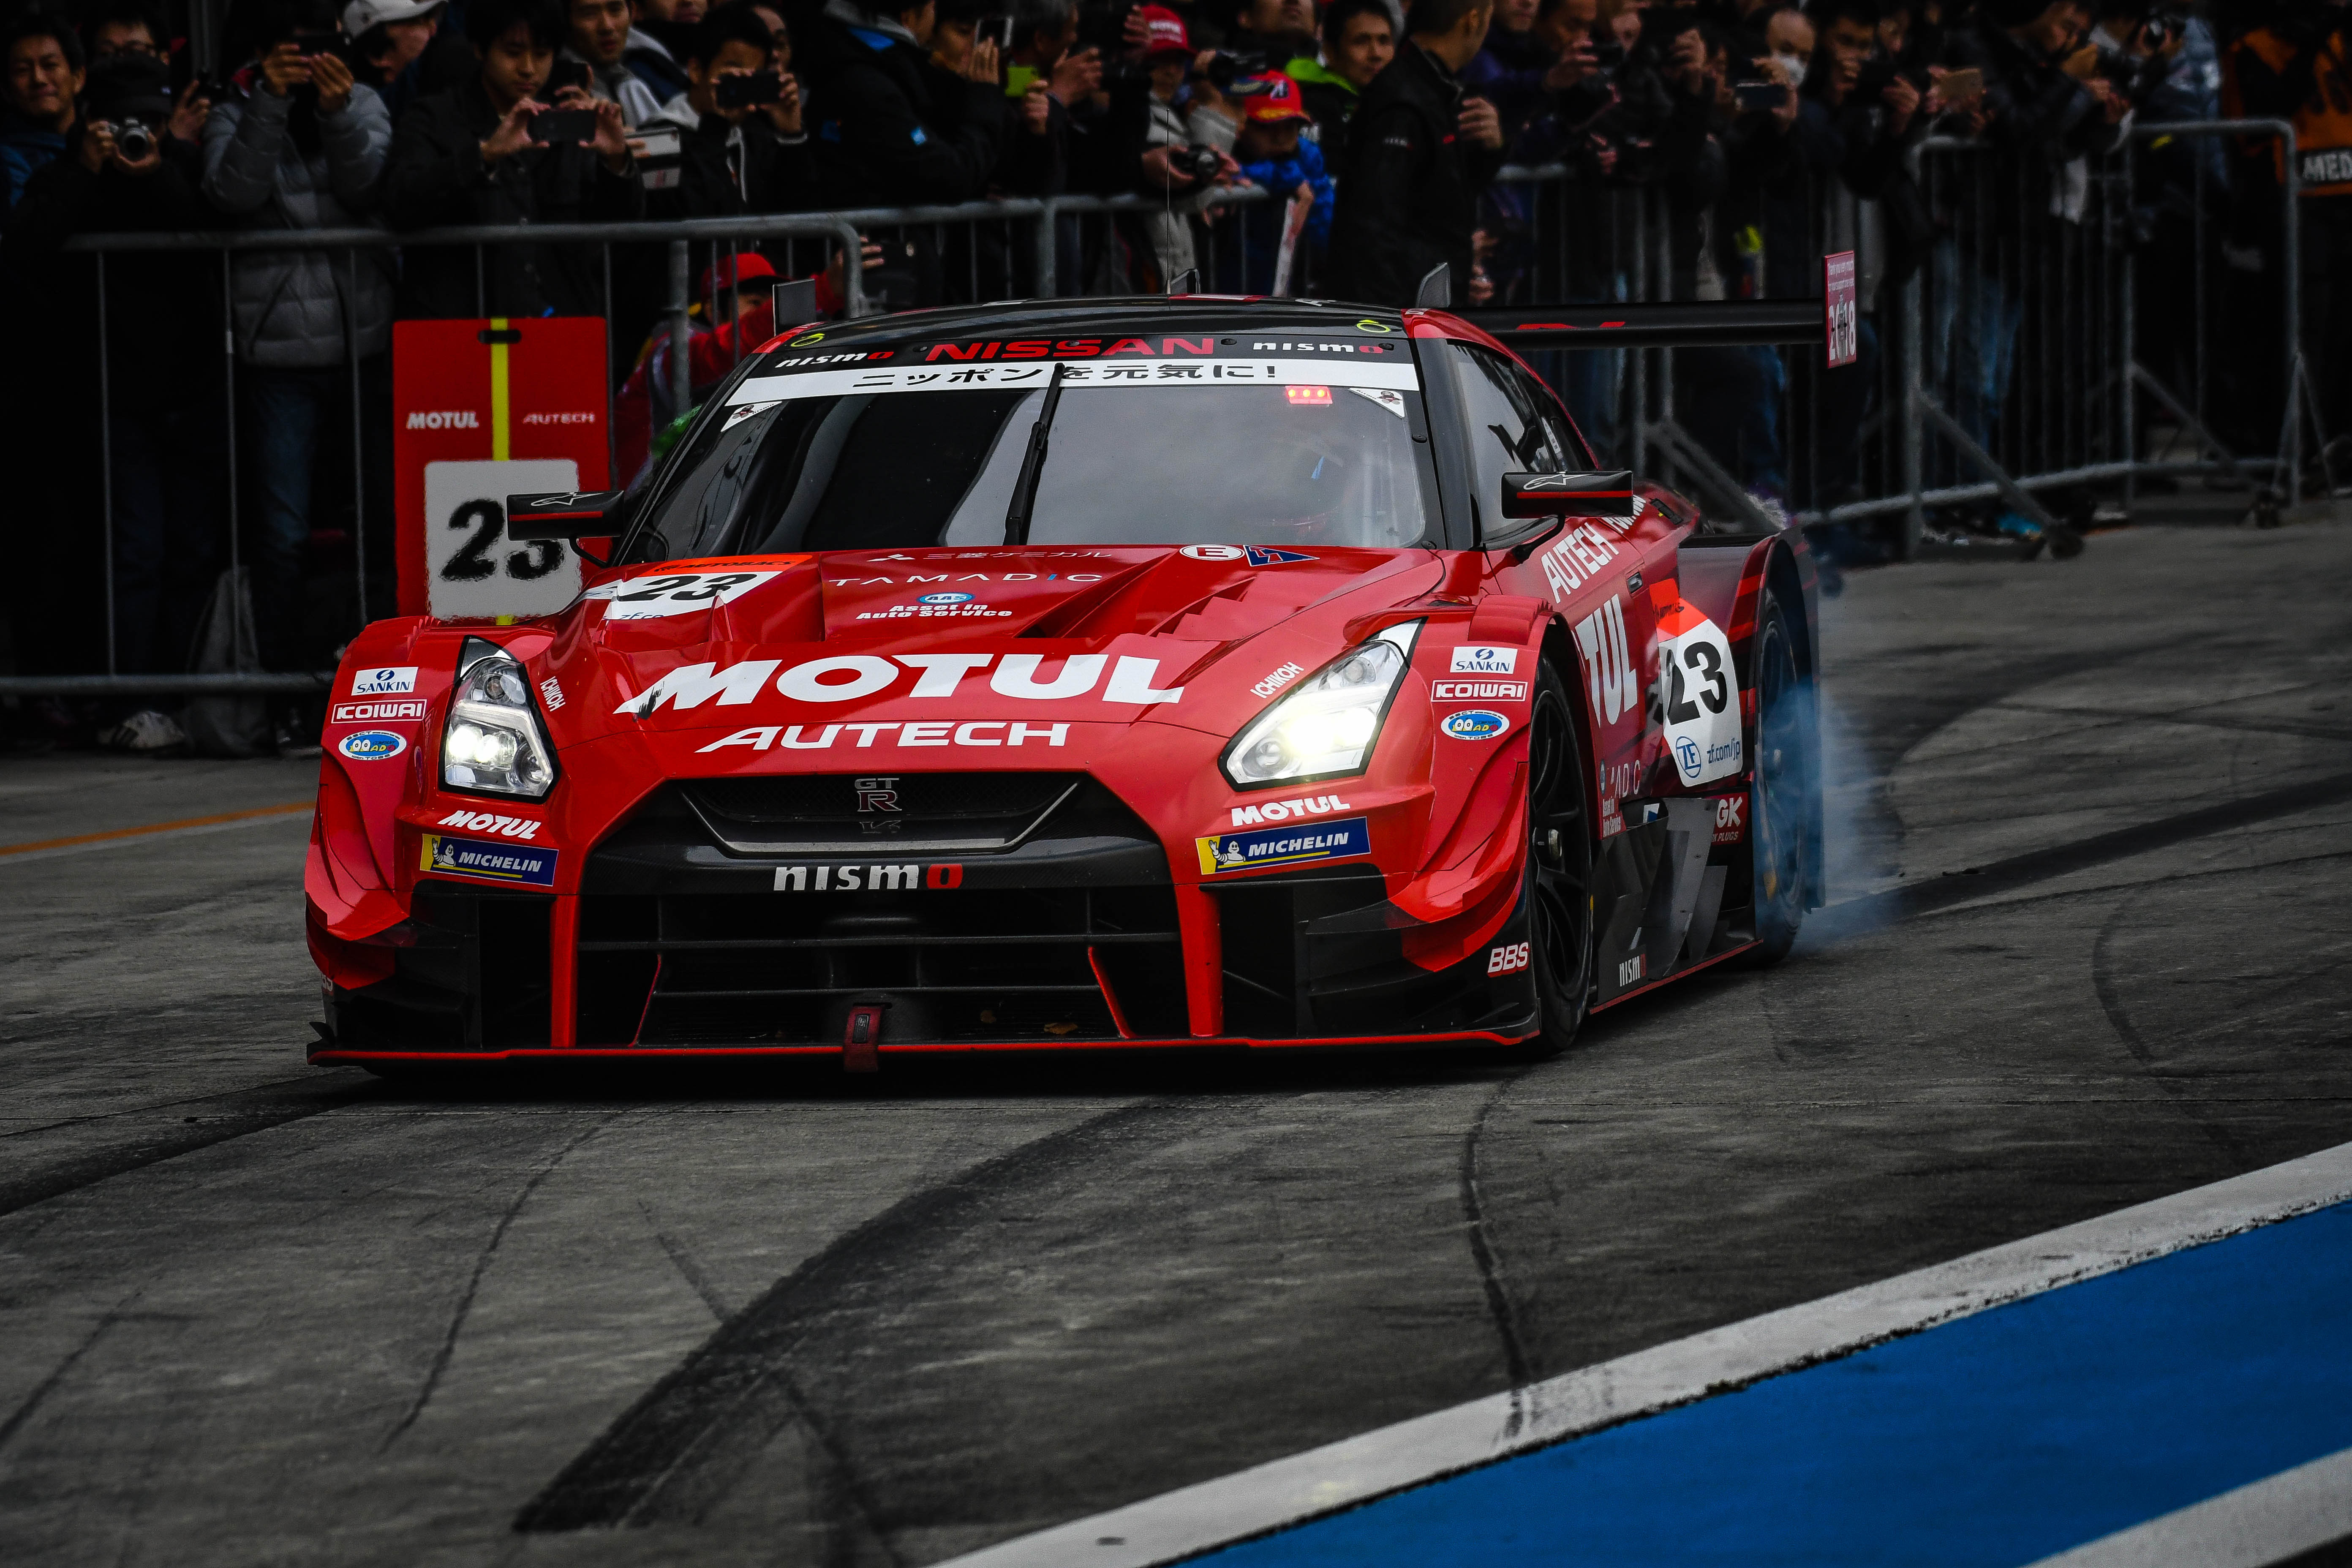 NISMO CELEBRATES THE PAST AND LOOKS TO THE FUTURE